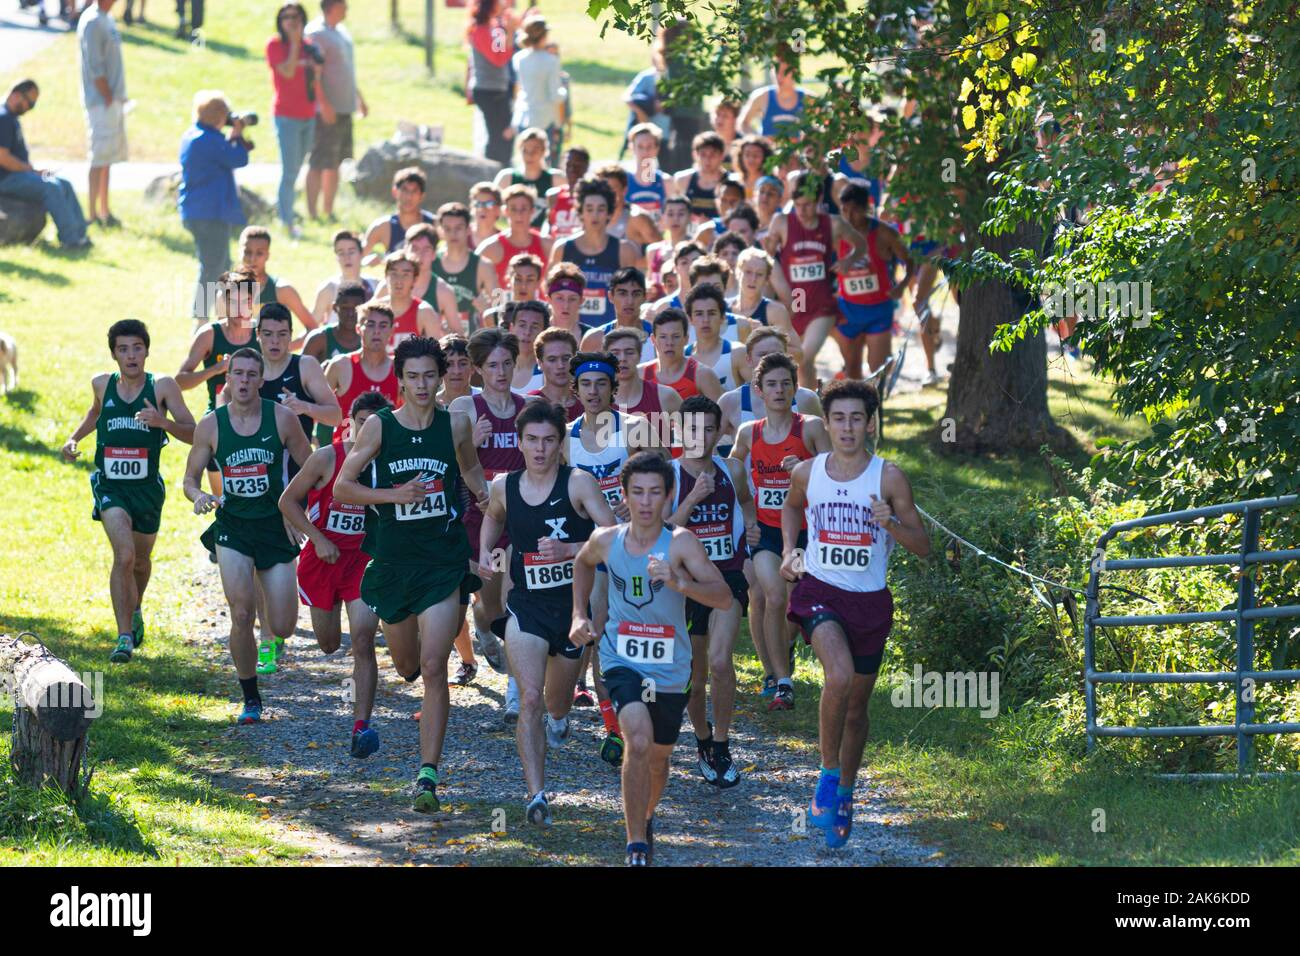 Wappingers Falls, New York, USA - 29 September 2019: The lead pack of boys rounding a corner during a high school cross country race. Stock Photo